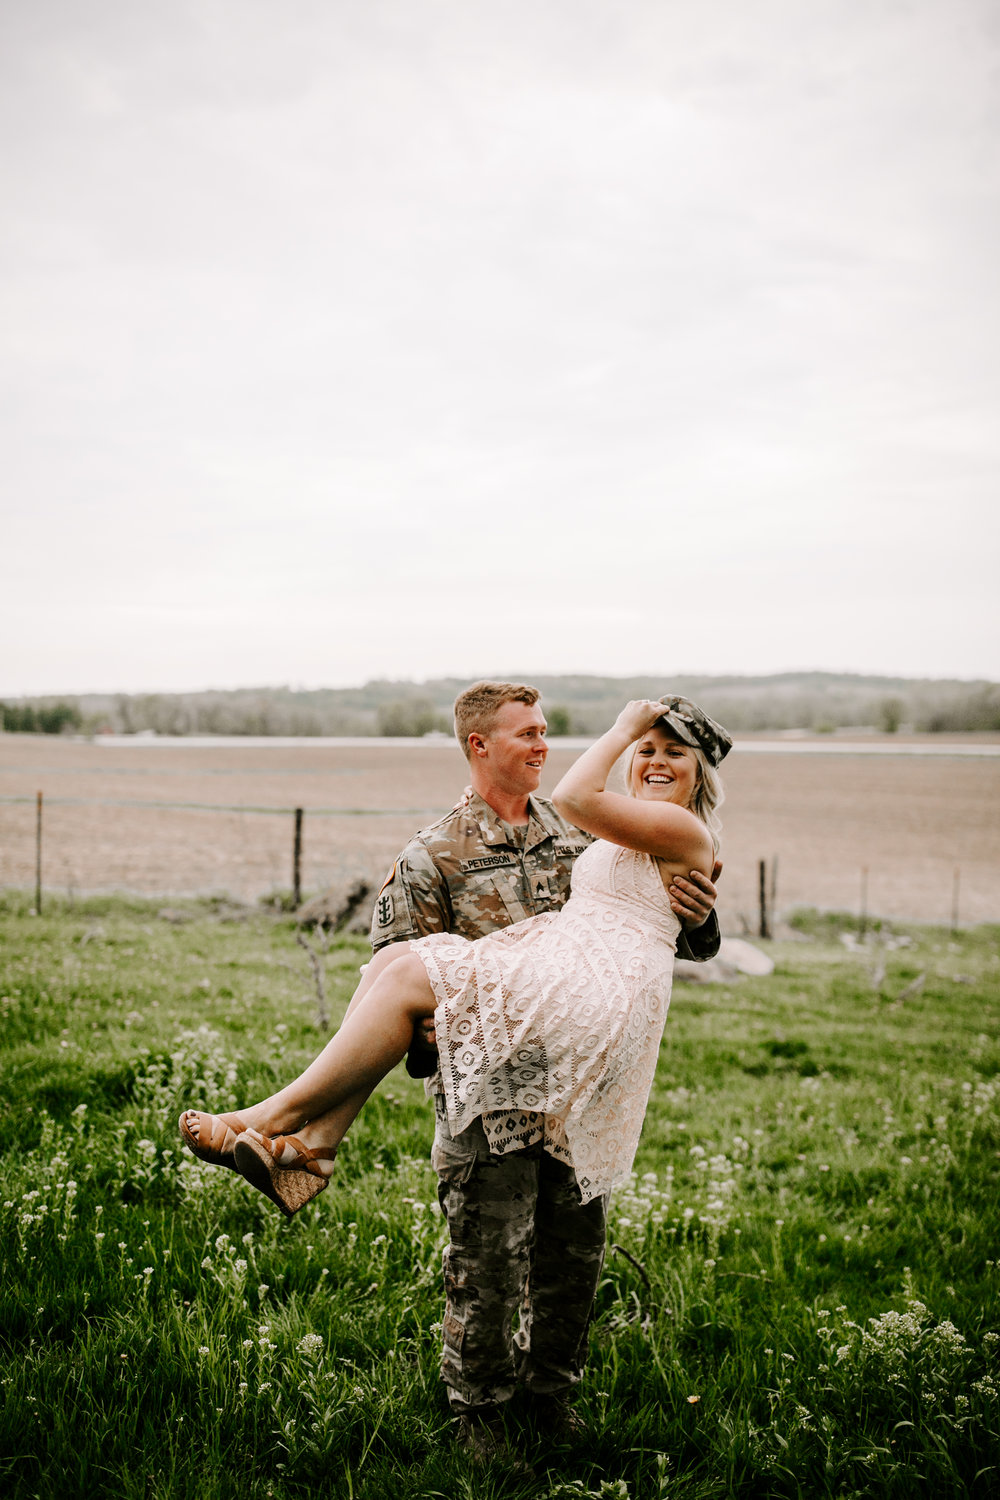 gracetphotography-wedding-photographer-adventure-bride-engagement-27.jpg